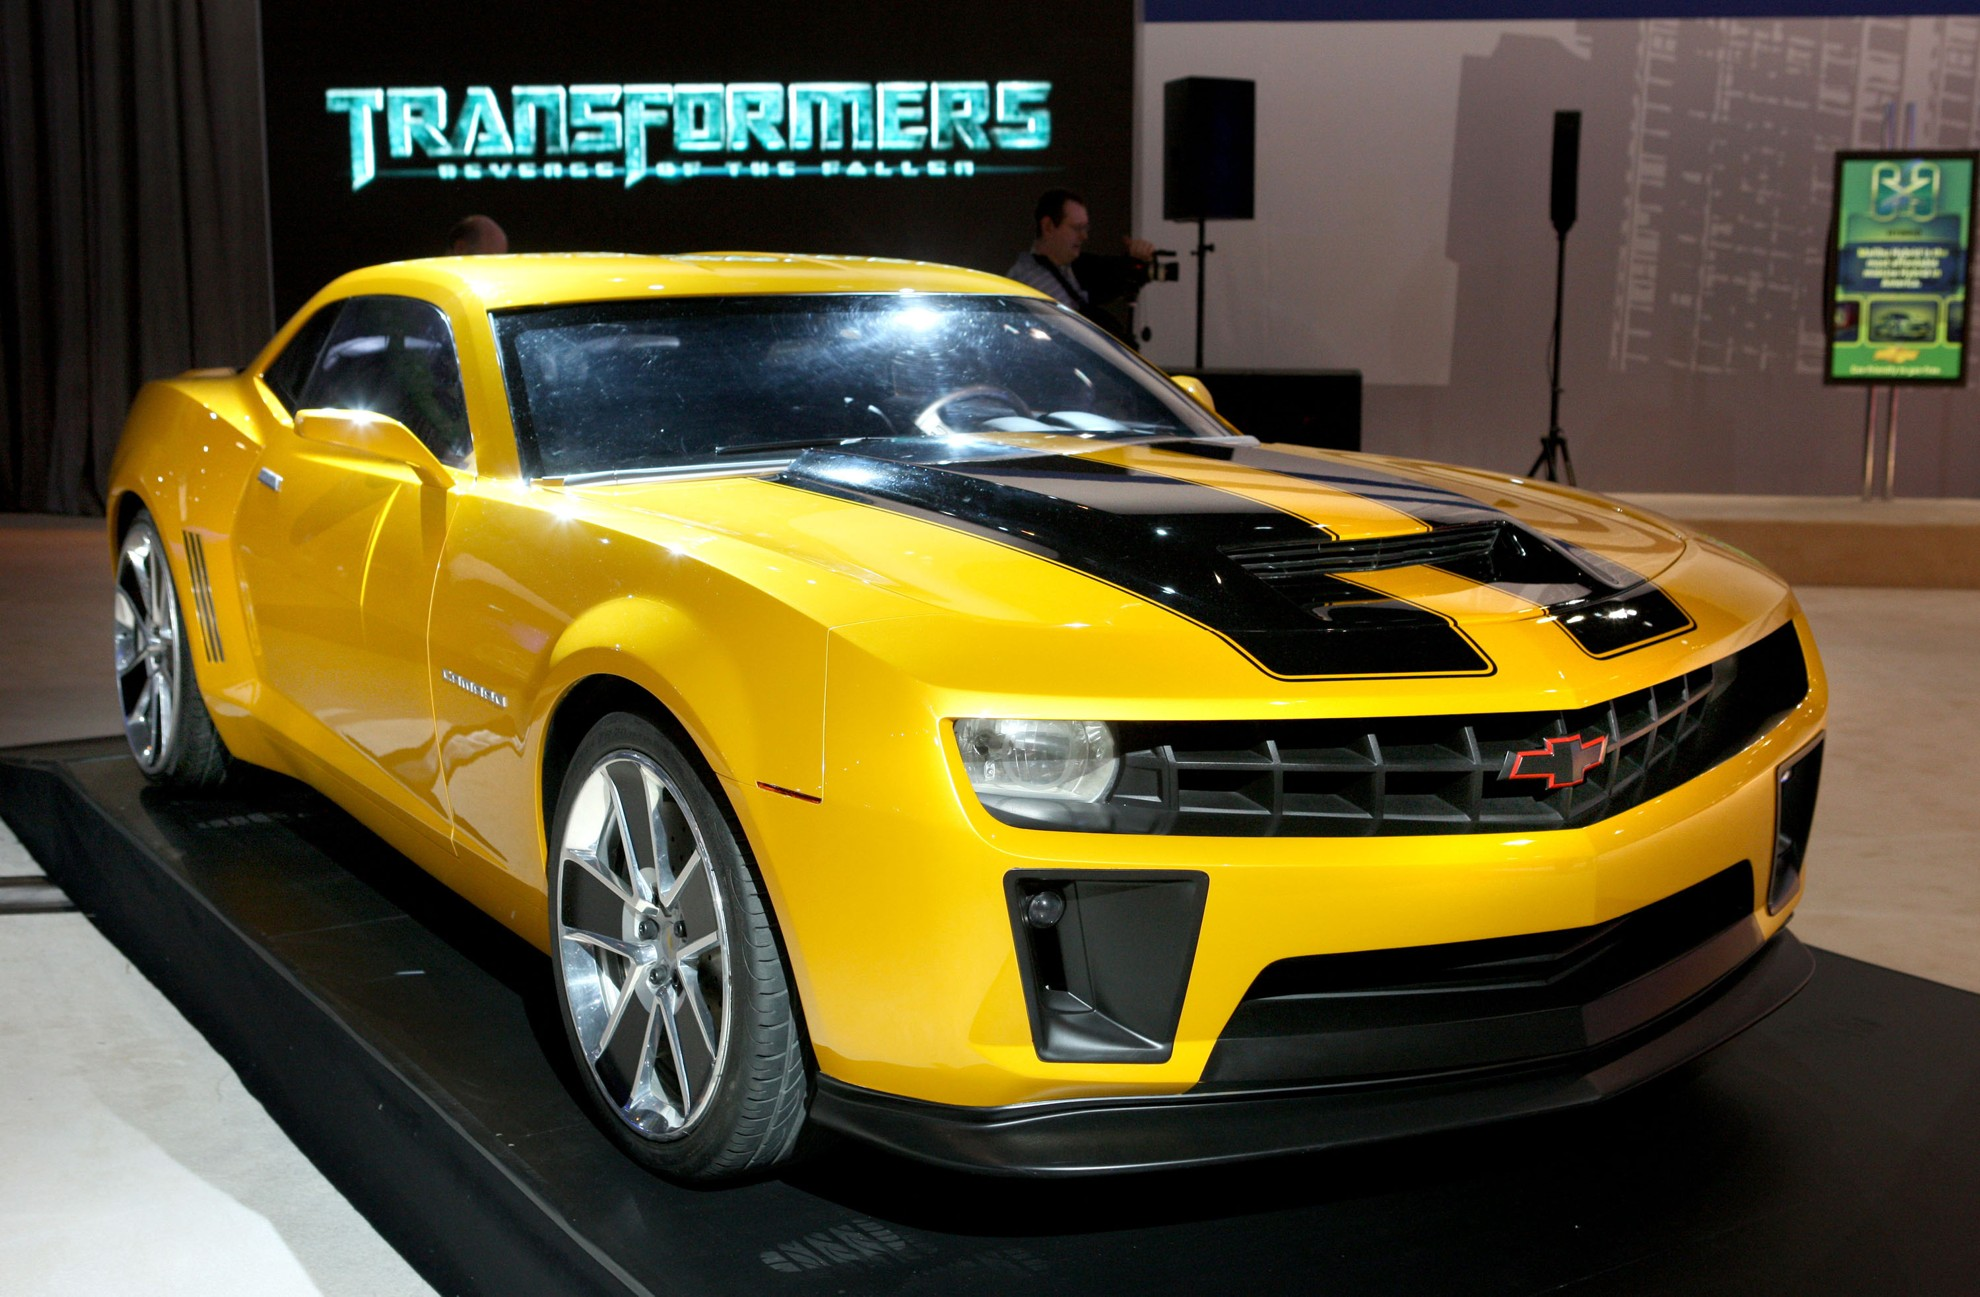 Transformers Chevrolet Camaro Transformers Over The Years